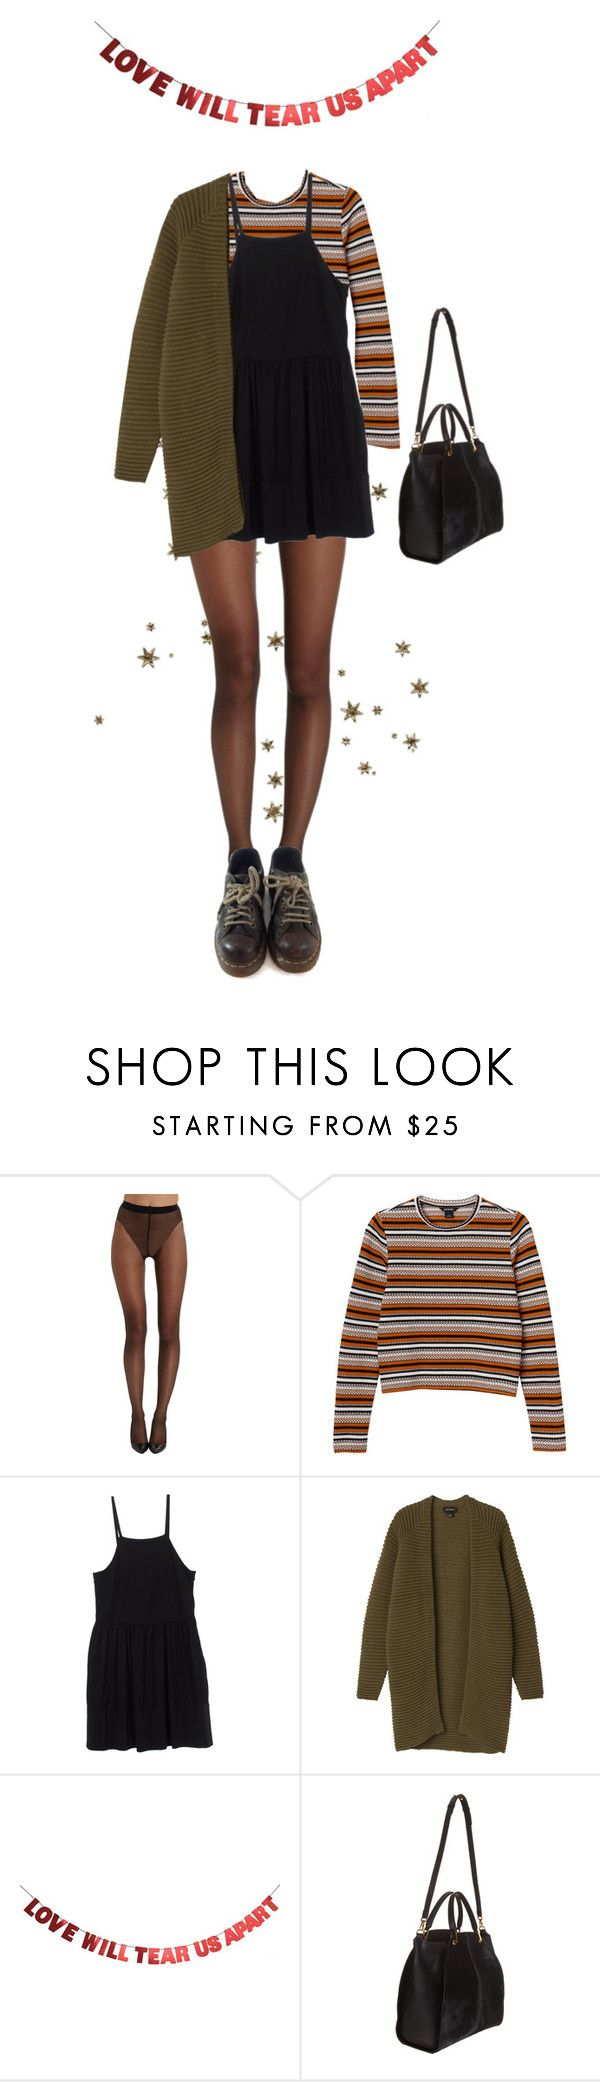 """Untitled #100"" by borninthe1990s ❤ liked on Polyvore featuring Wolford, Monki, Miu Miu, WALL, Maiyet and Dr. Martens"